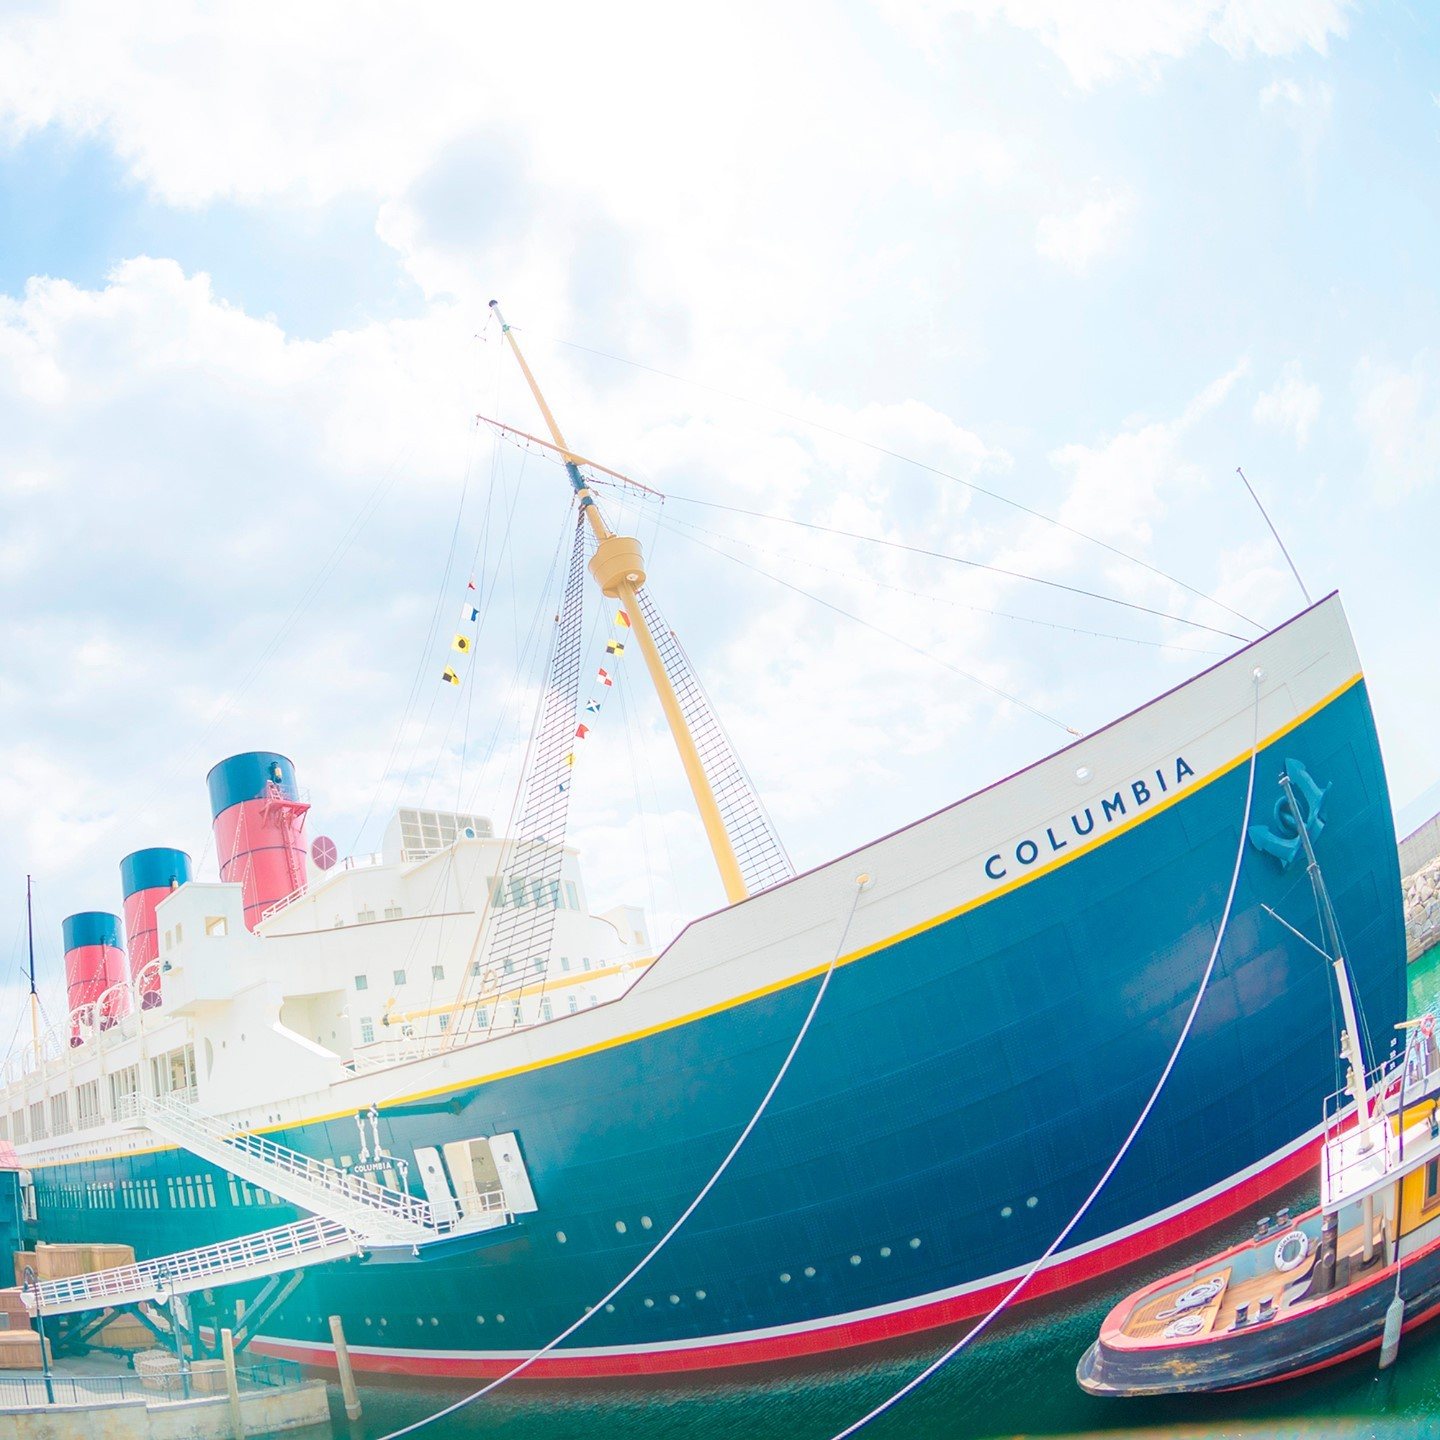 Ready for a day at SEA? 今日は #海の日  #sscolumbia #americanwaterfront #tokyodisneysea...のイメージ